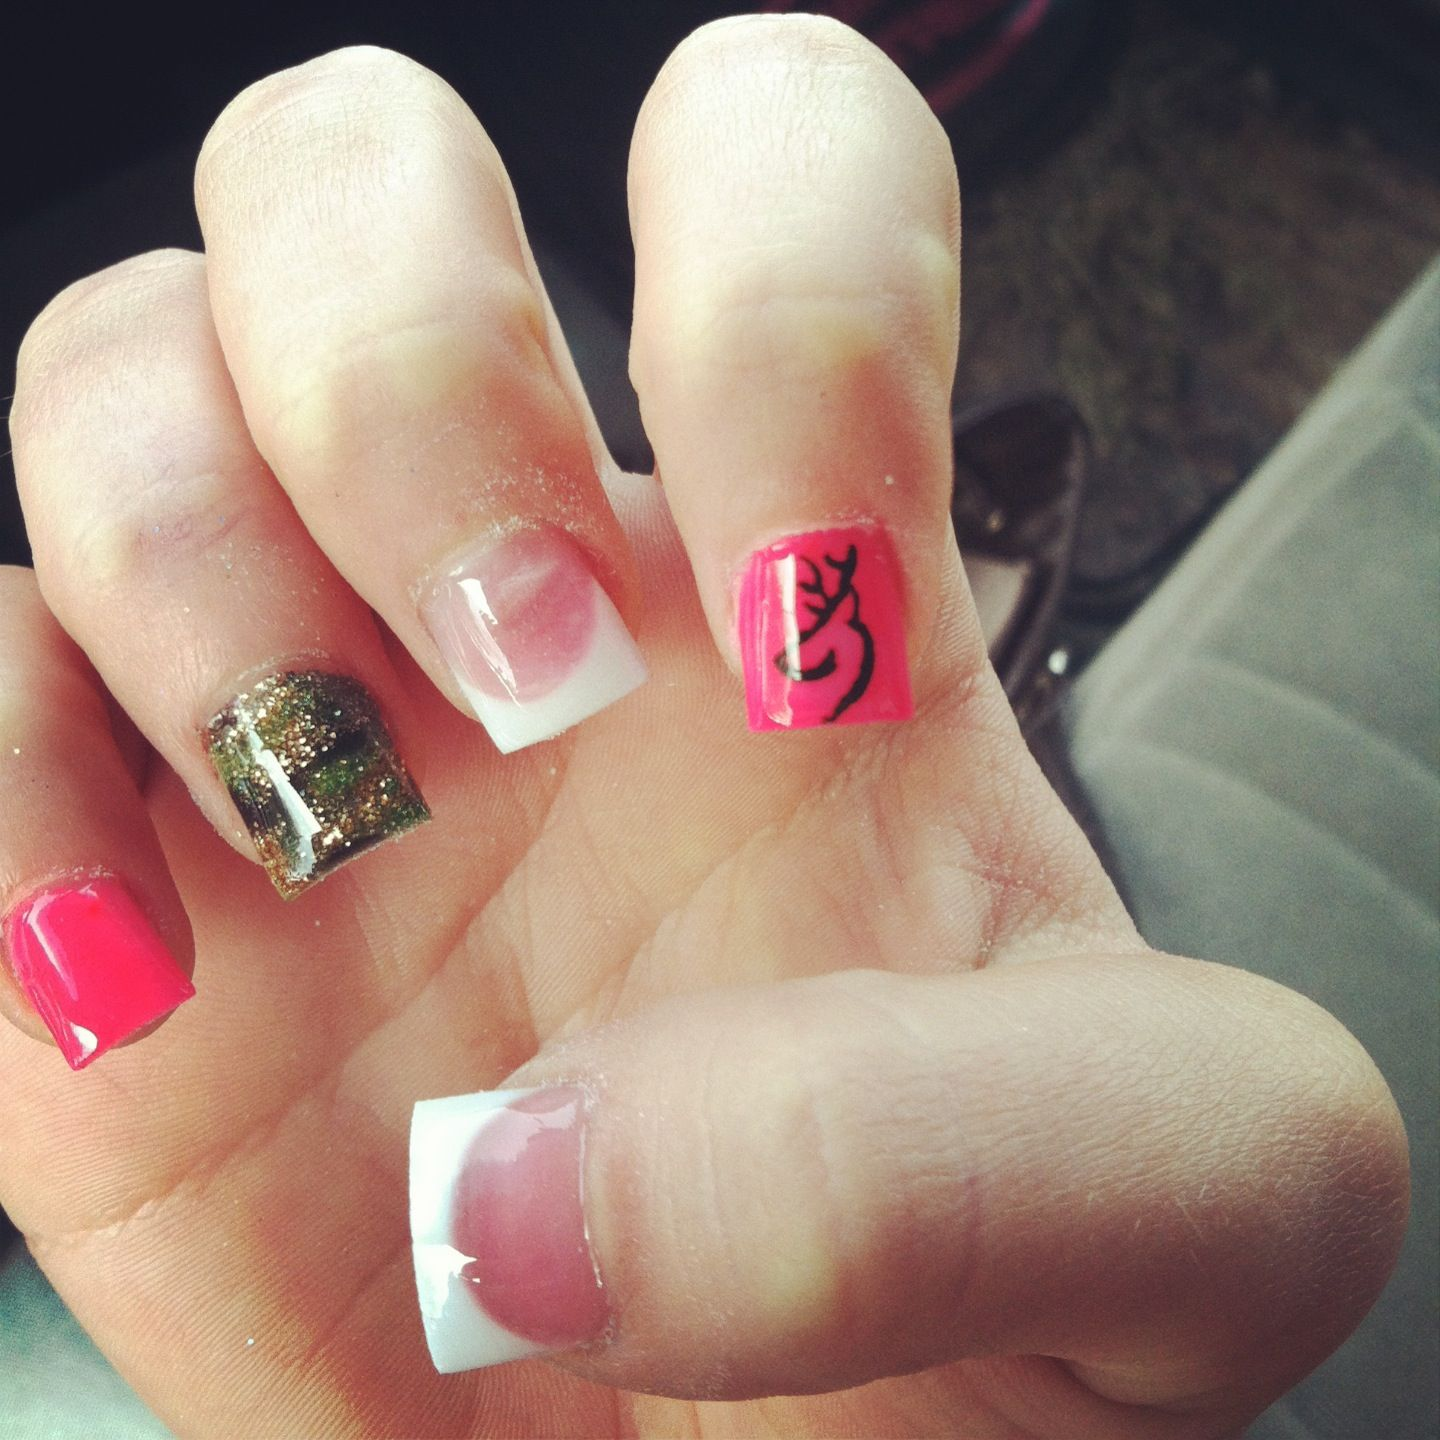 Browning nails, weird shape, and wouldn't do the white tip. - Browning Nails, Weird Shape, And Wouldn't Do The White Tip